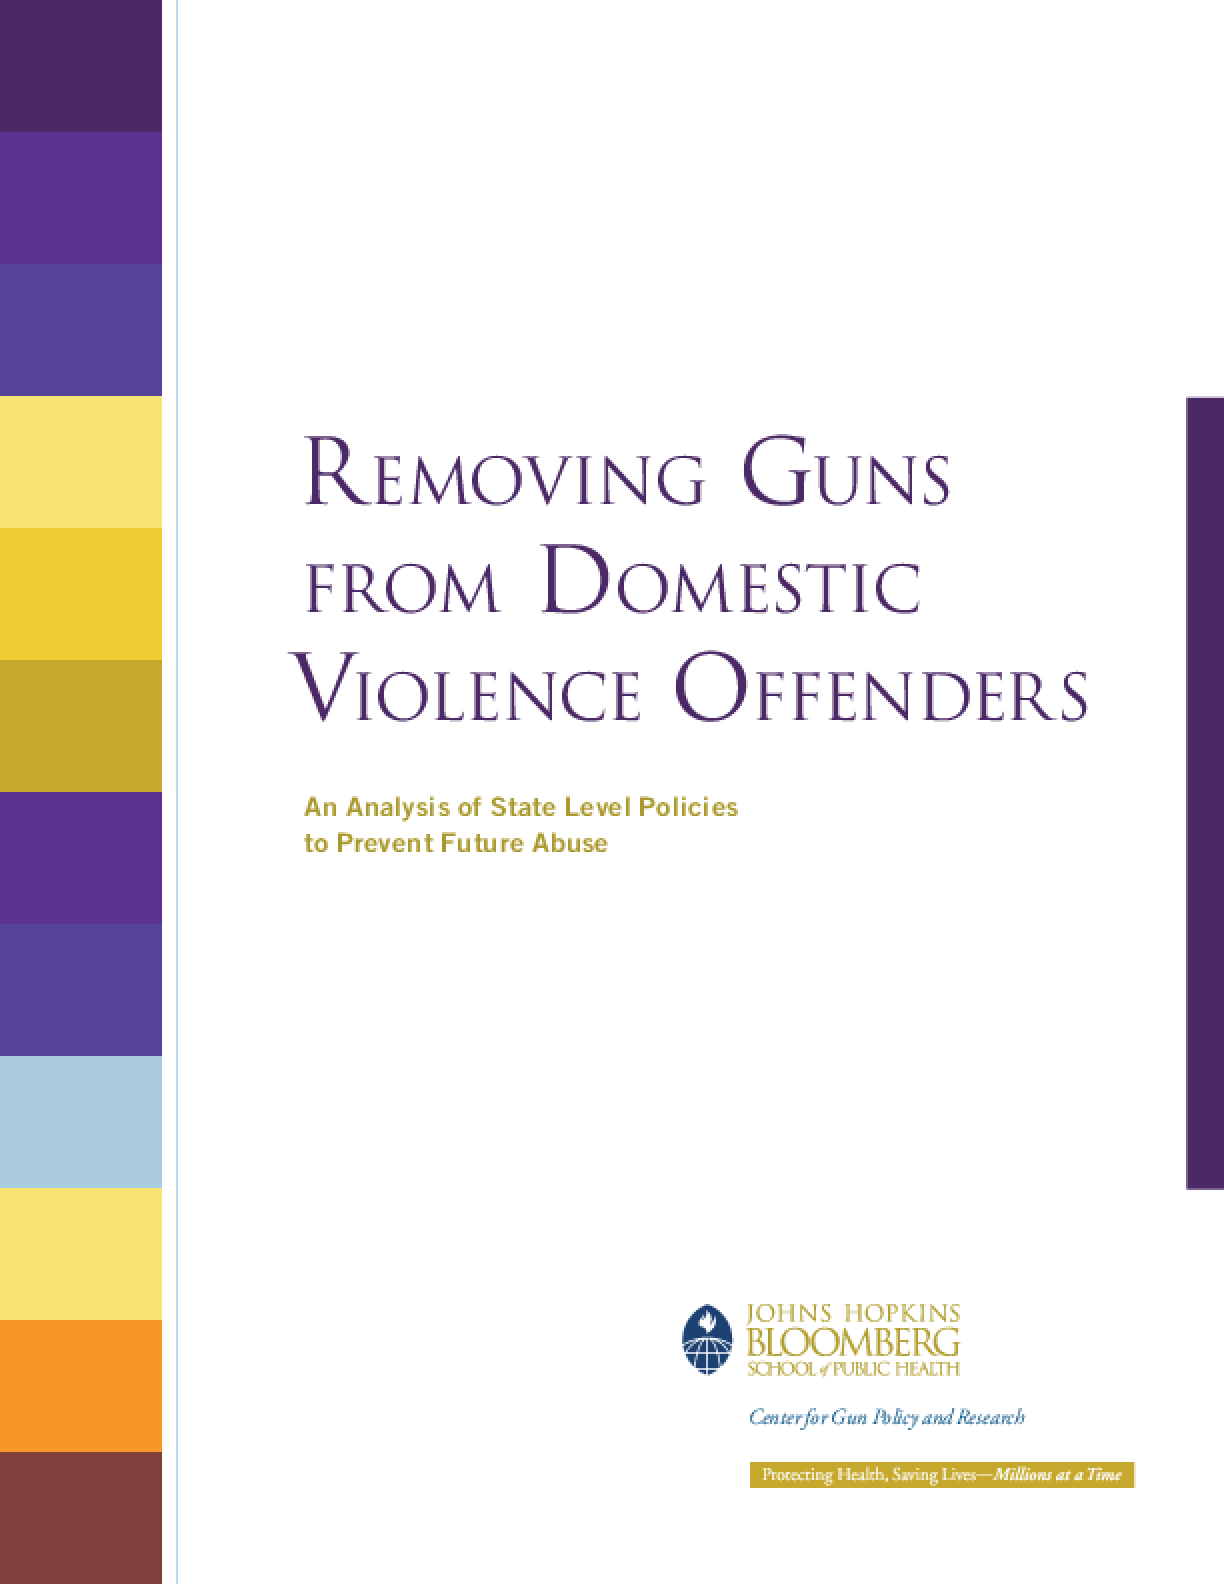 Removing Guns from Domestic Violence Offenders